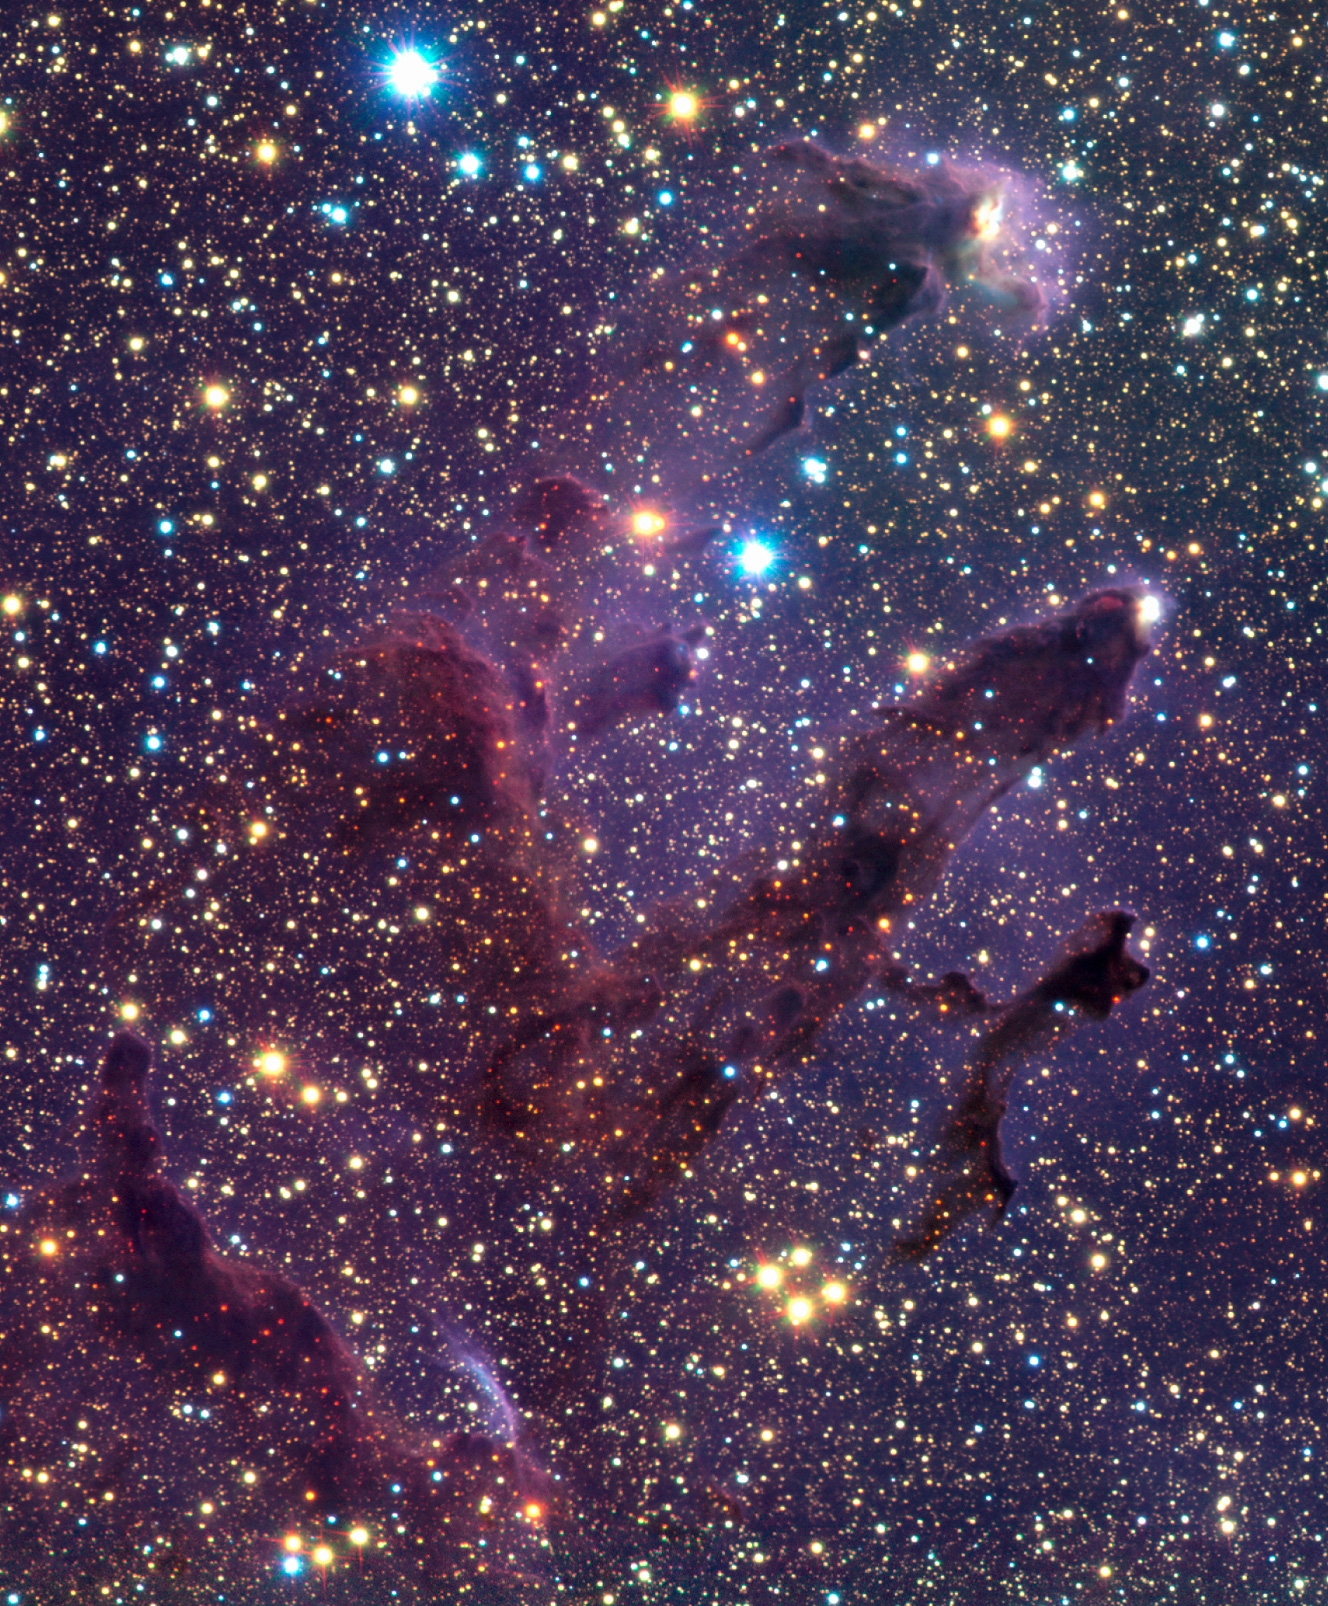 eagle nebula star birth - photo #21